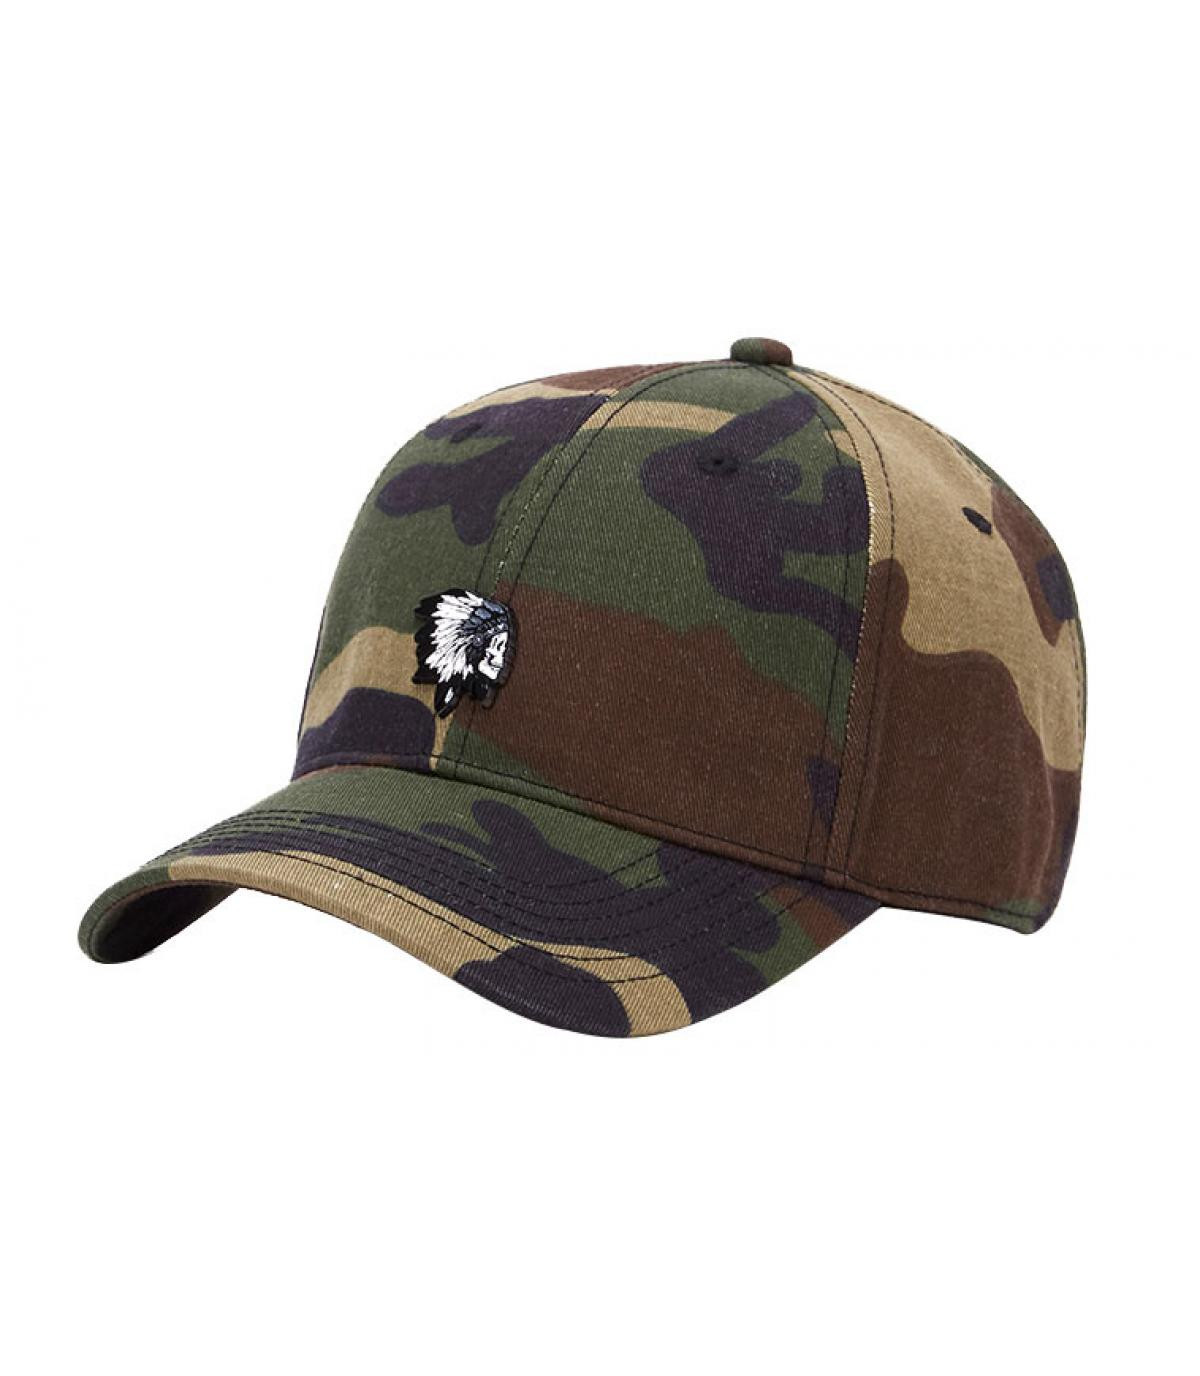 Détails Freedom Corps Curved camo - image 2